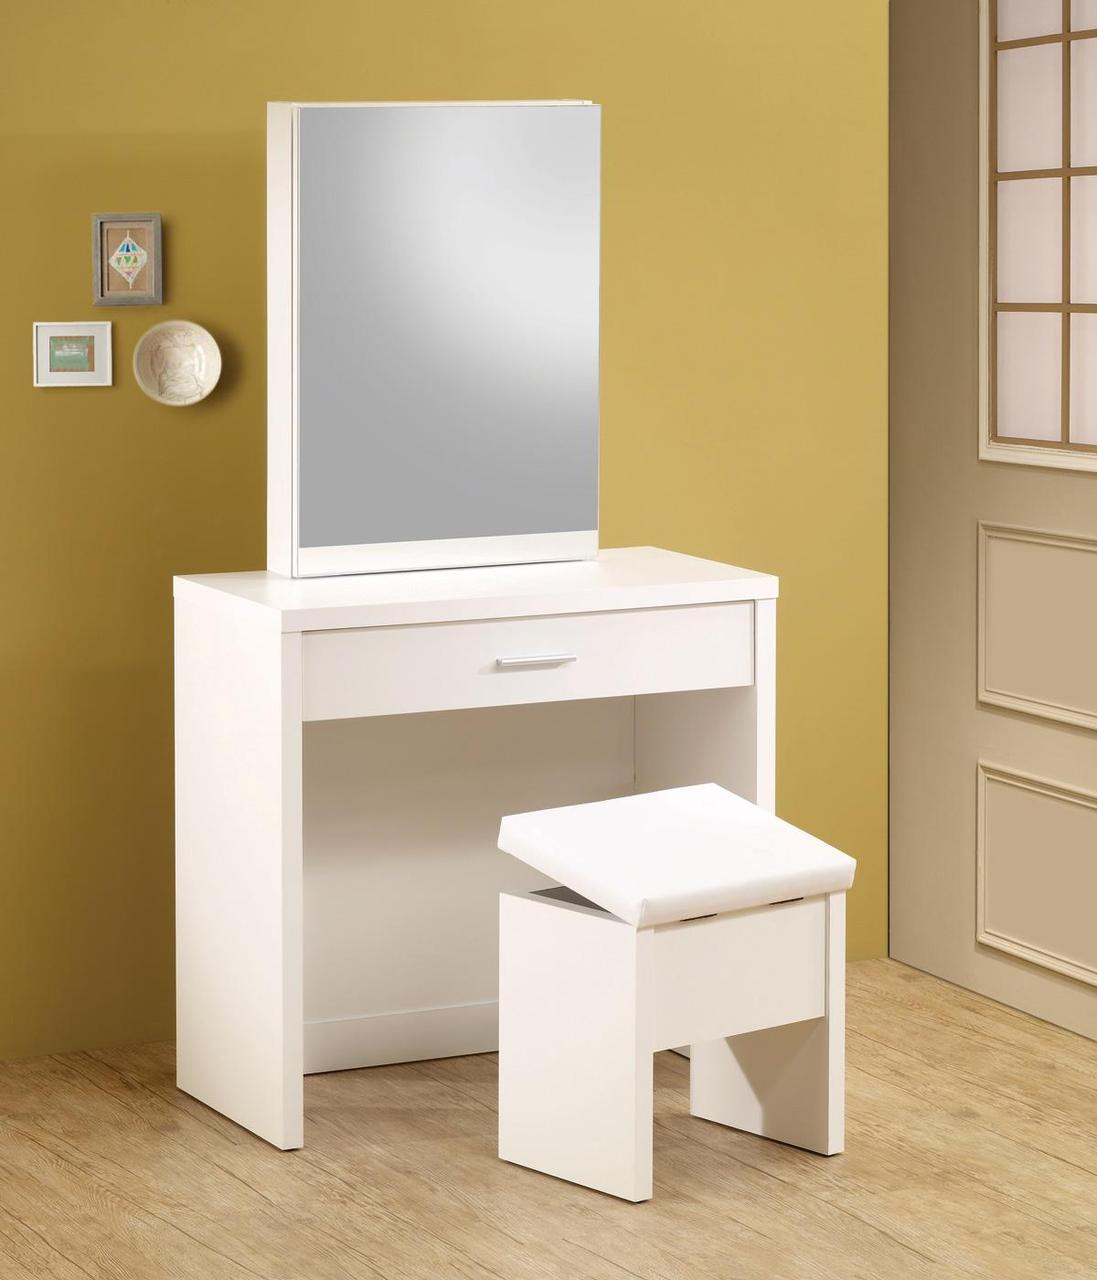 Taylor white makeup vanity table set white vanity hidden Makeup vanity table